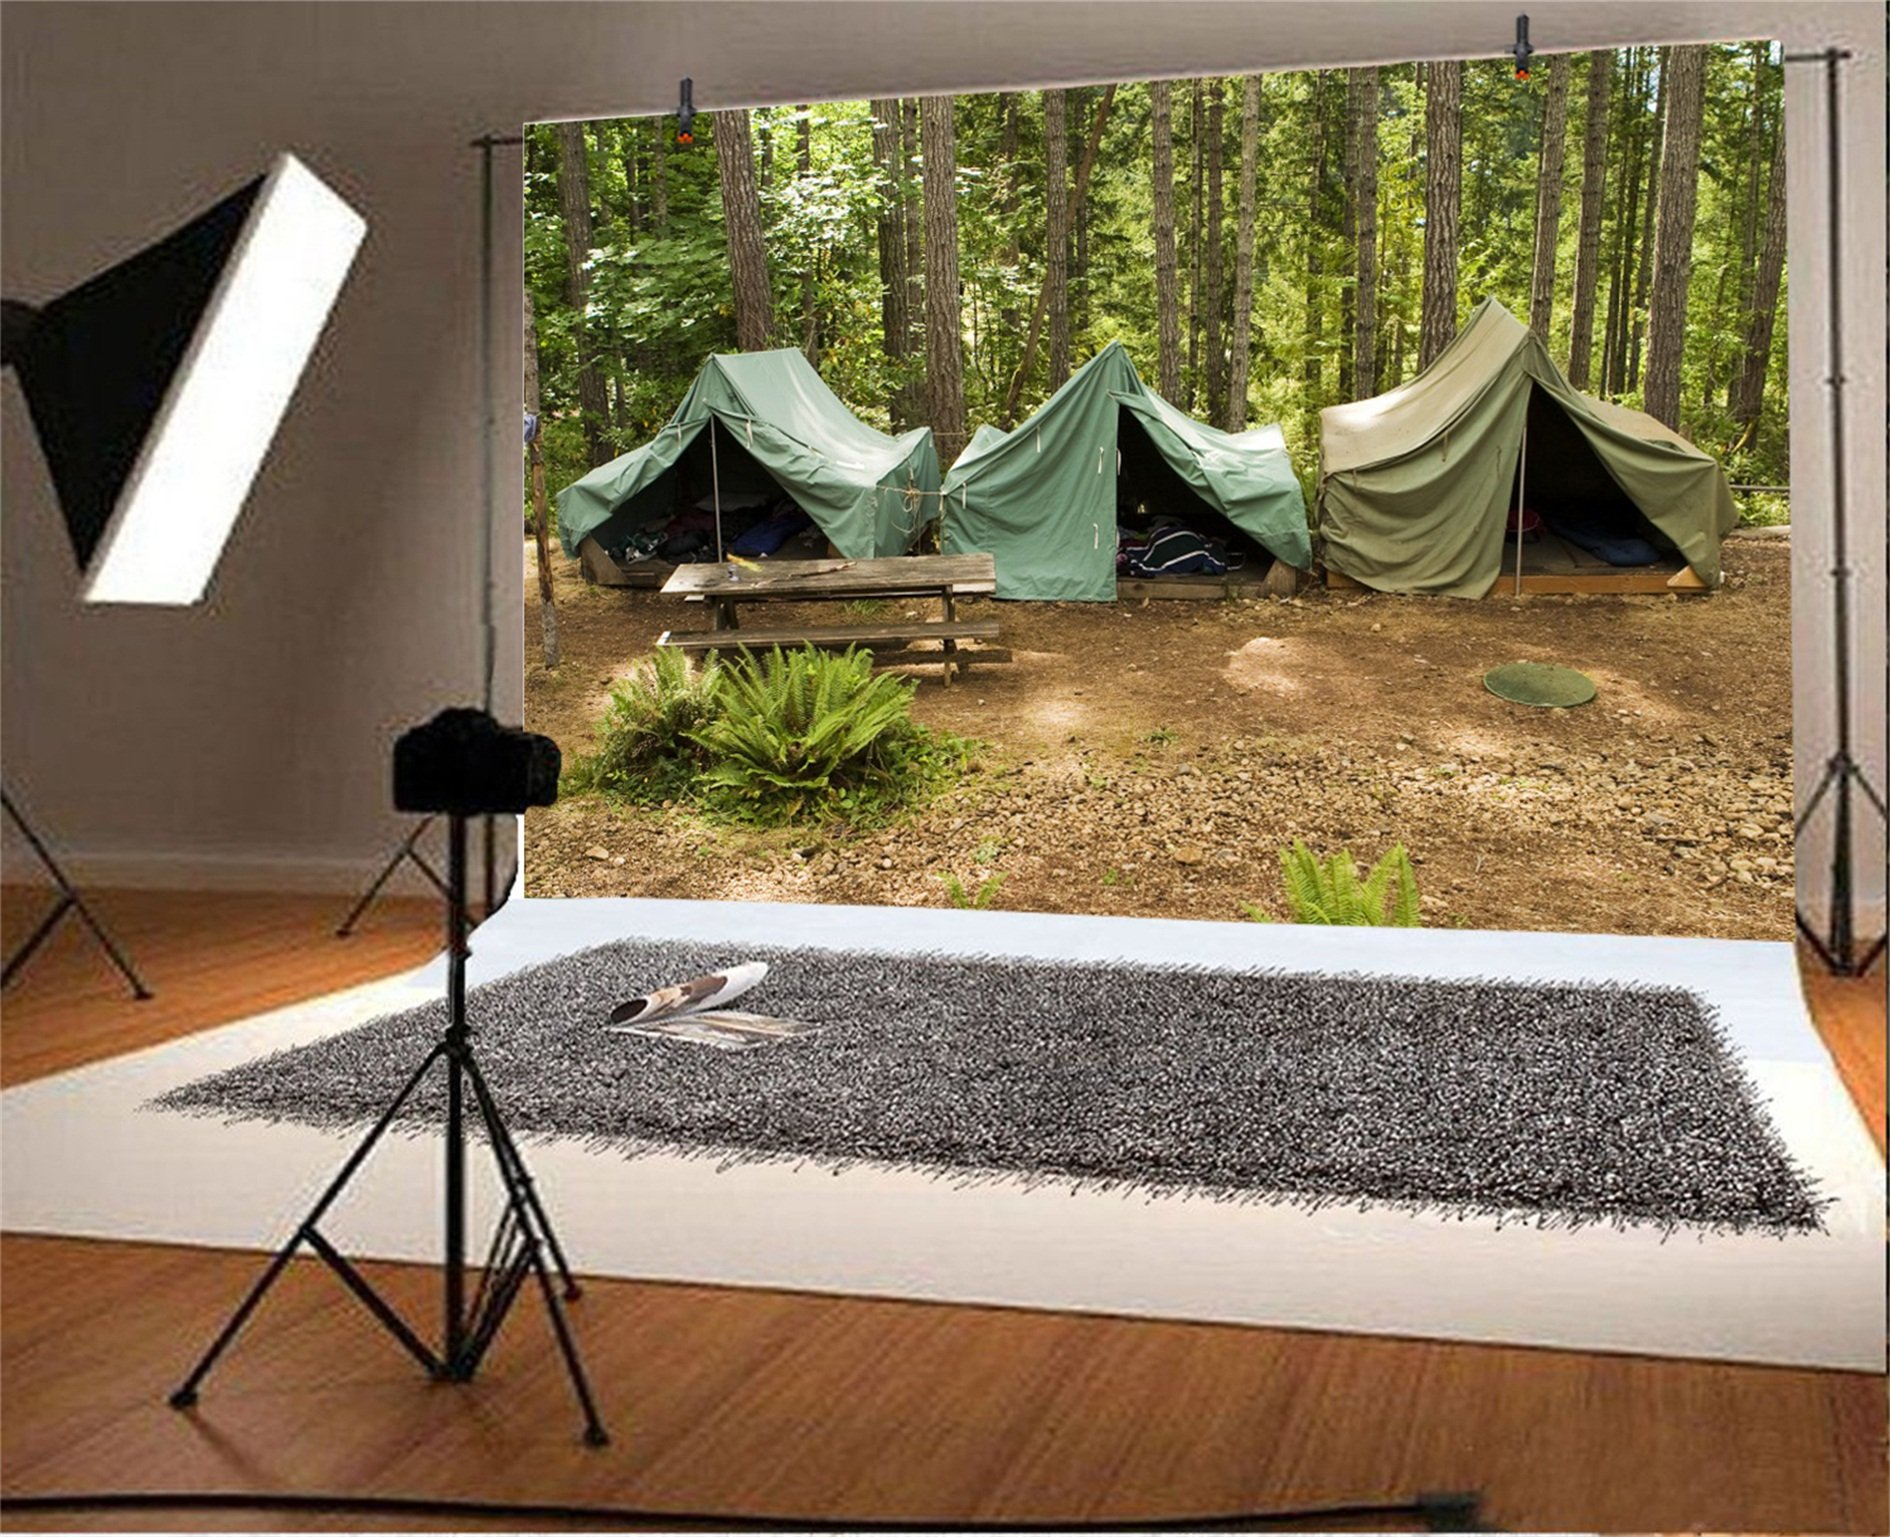 CSFOTO 7x5ft Background For Boy Scouts Group of Canvas Tents At Campground Summer Camp Photography Backdrop Overnight Outdoors Travel Adventure Photo Studio Props Children Portrait Wallpaper by CSFOTO (Image #2)